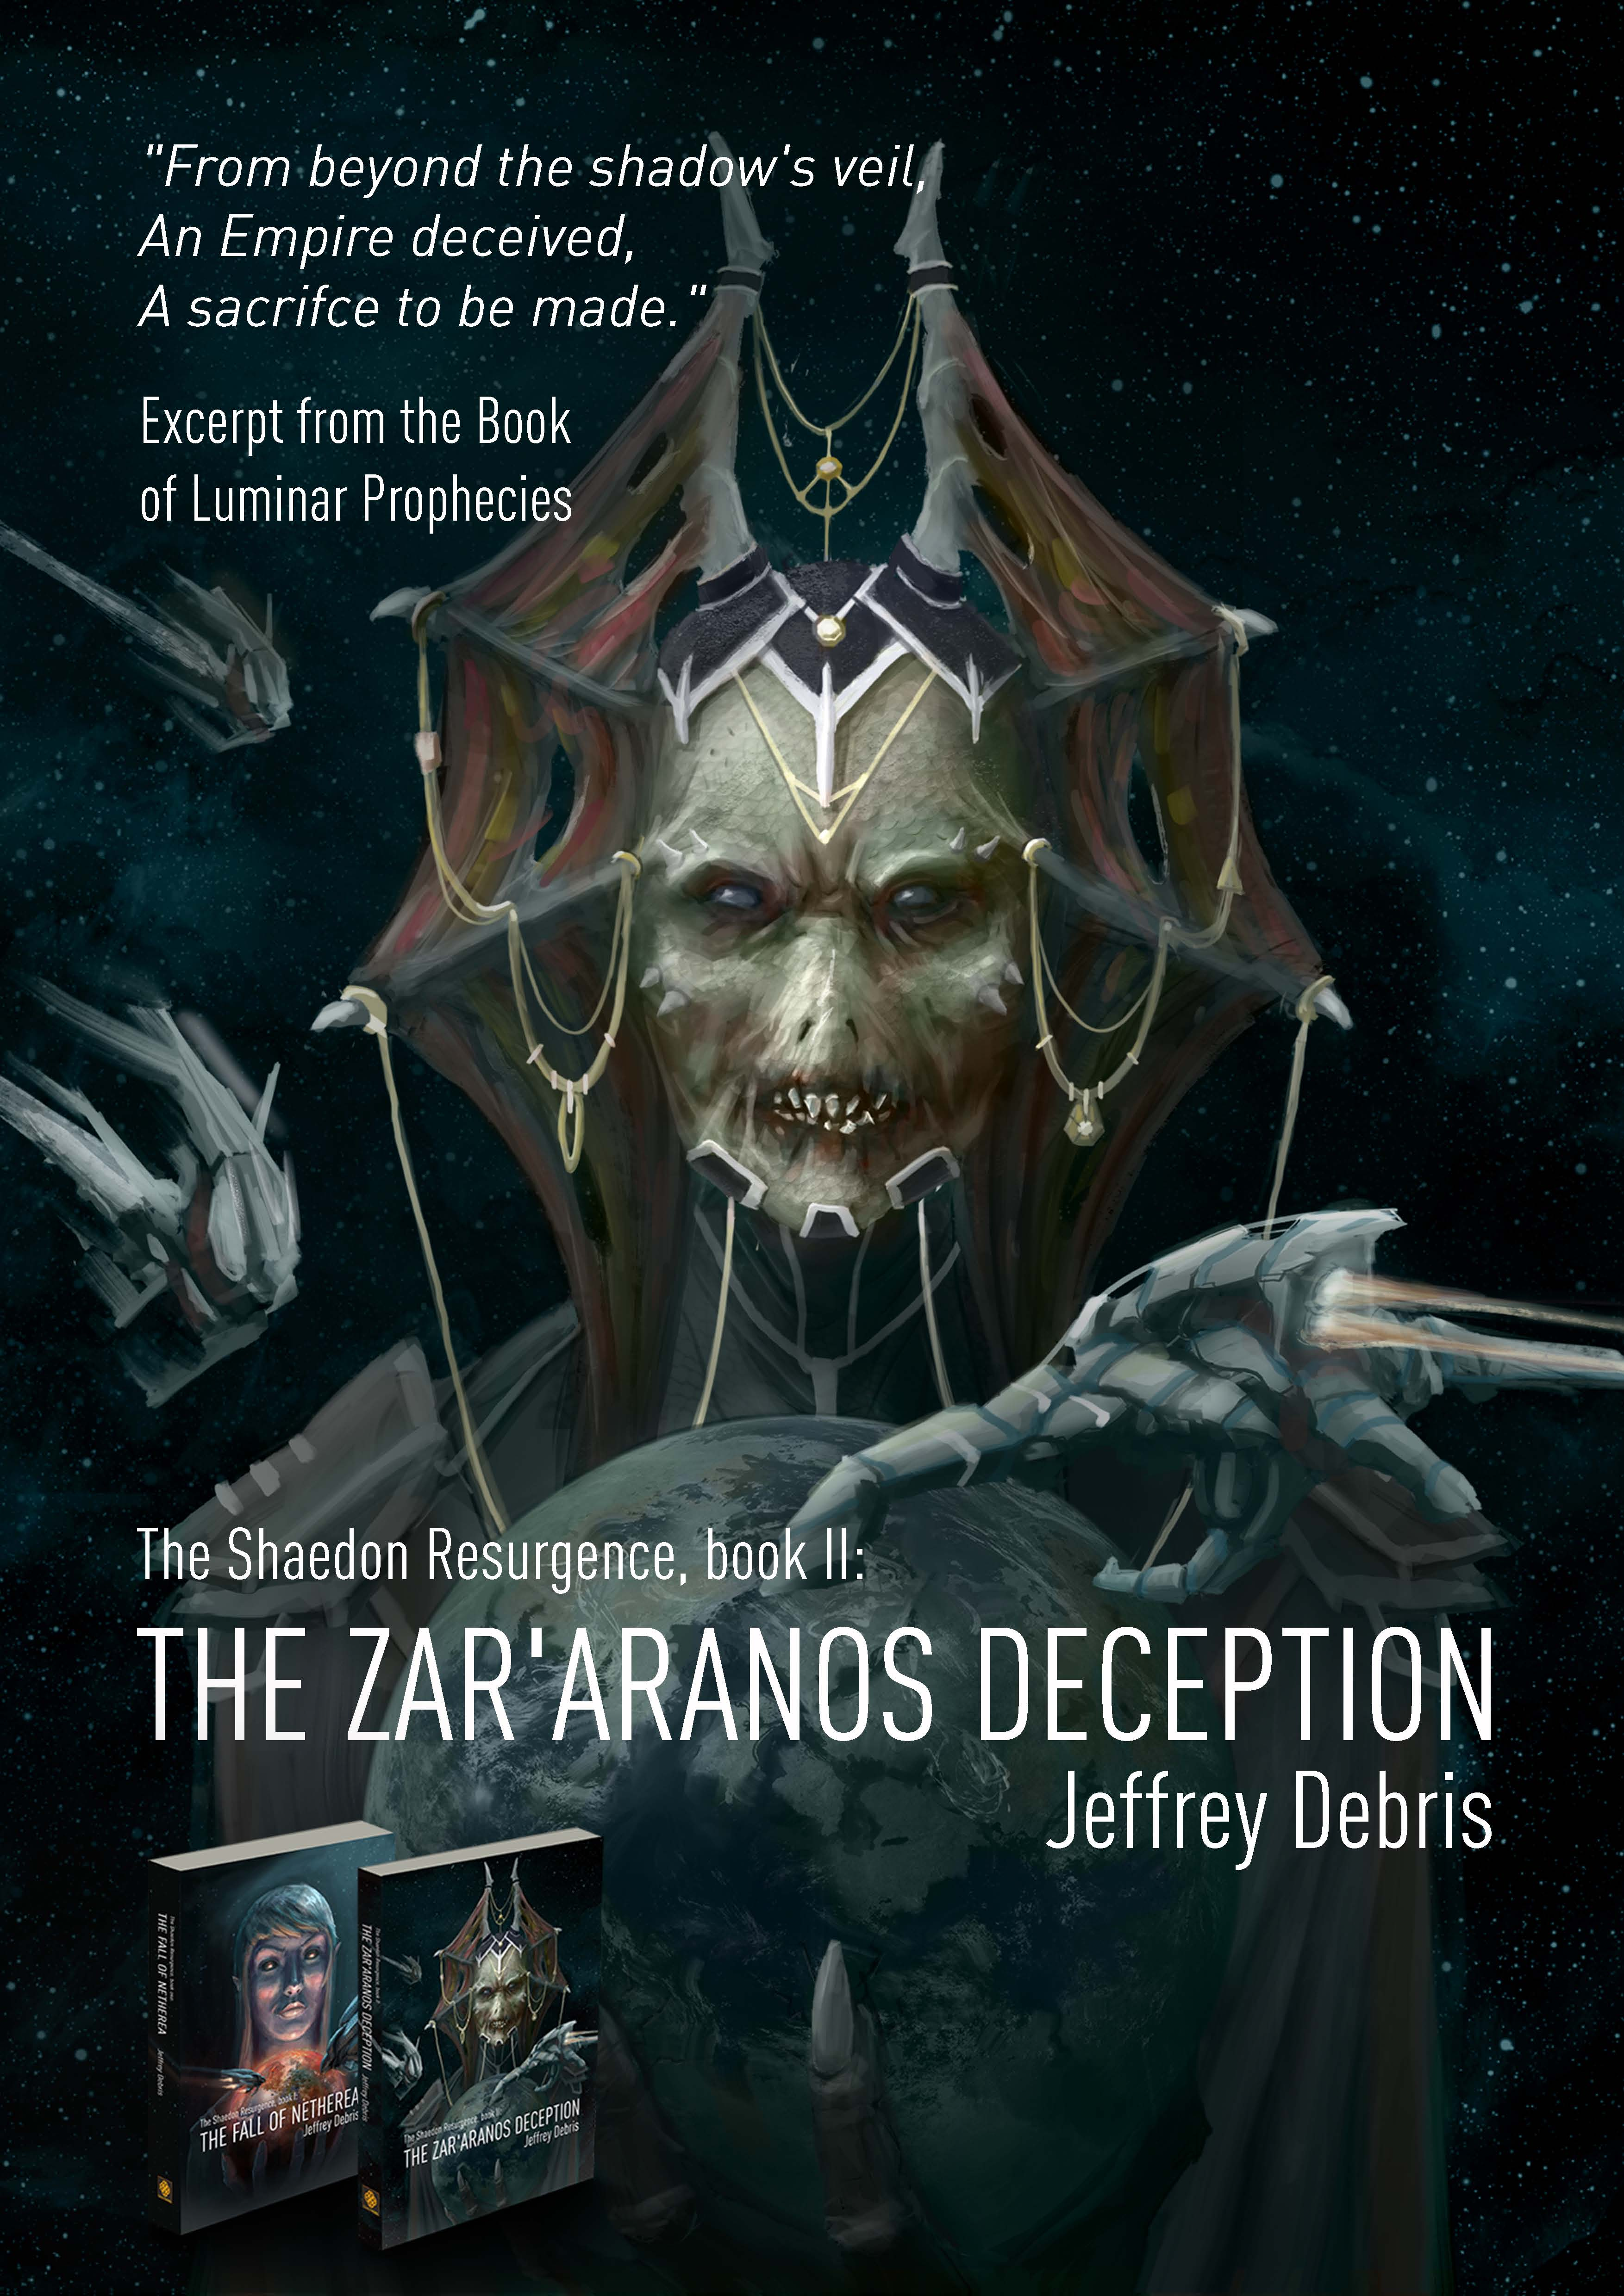 Poster The Zar'aranos Deception